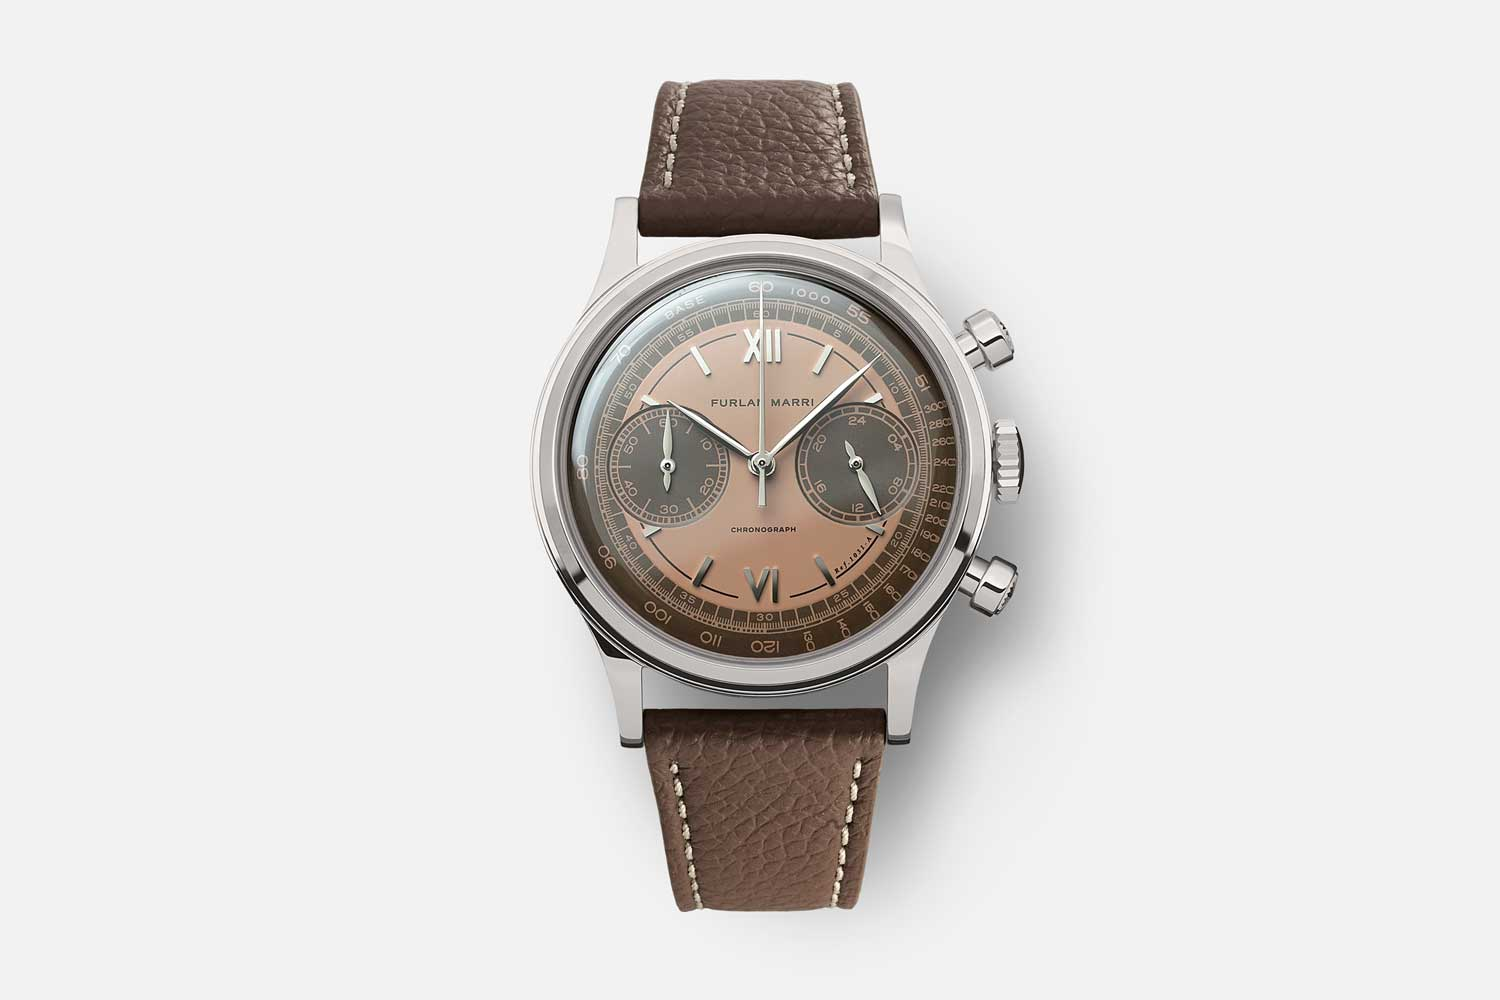 """The 38mm Furlan Marri Ref. 1031-A """"Havana Salmon,"""" inspired by the colors of Latin America, with a chocolate and salmon dial"""